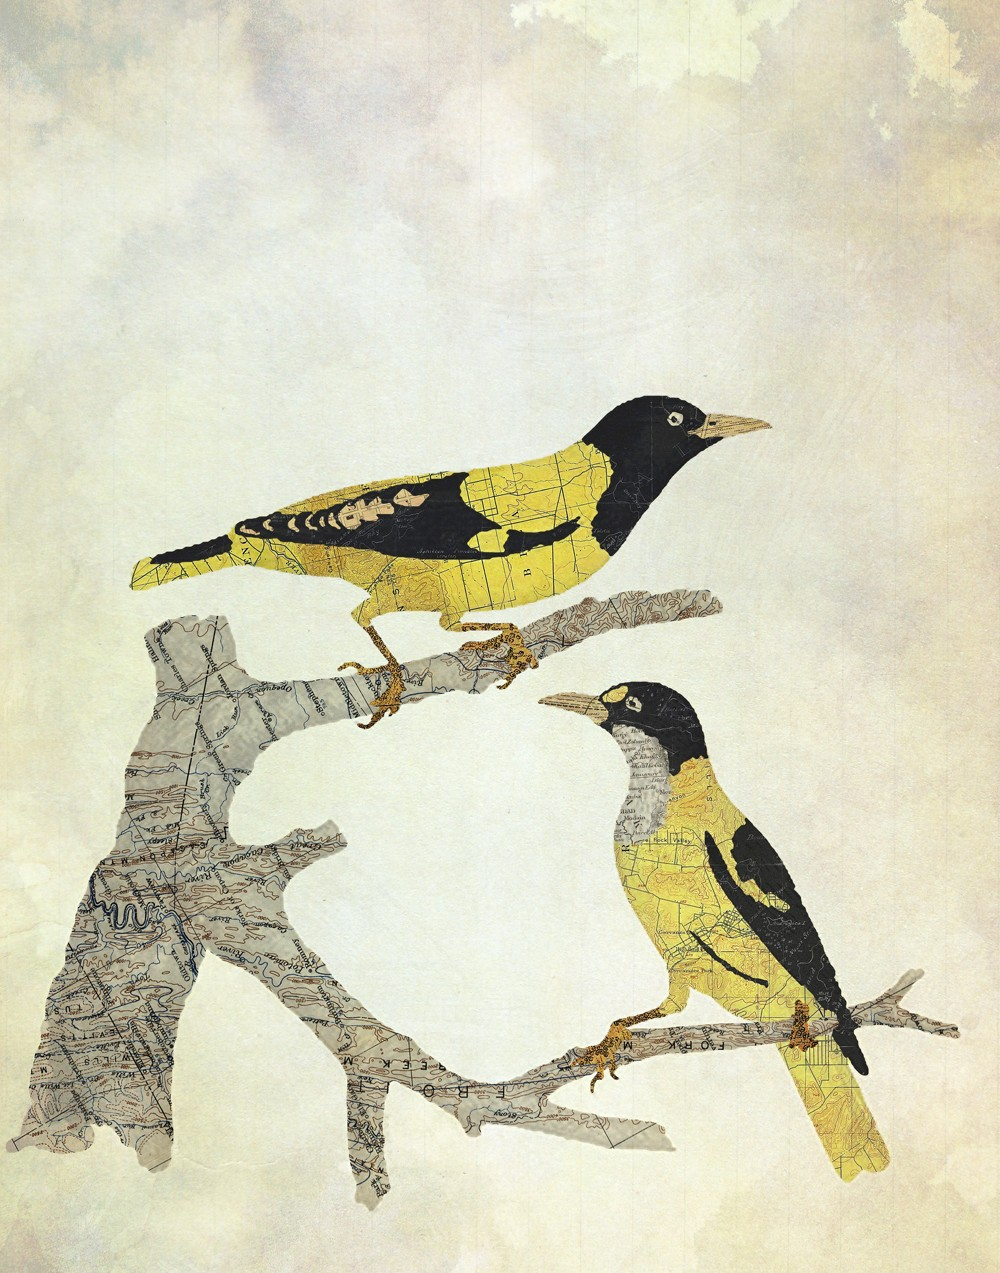 06-Goldfinches-Jason-LaFerrera-Cartography-Shaped-to-make-Map-Animals-www-designstack-co